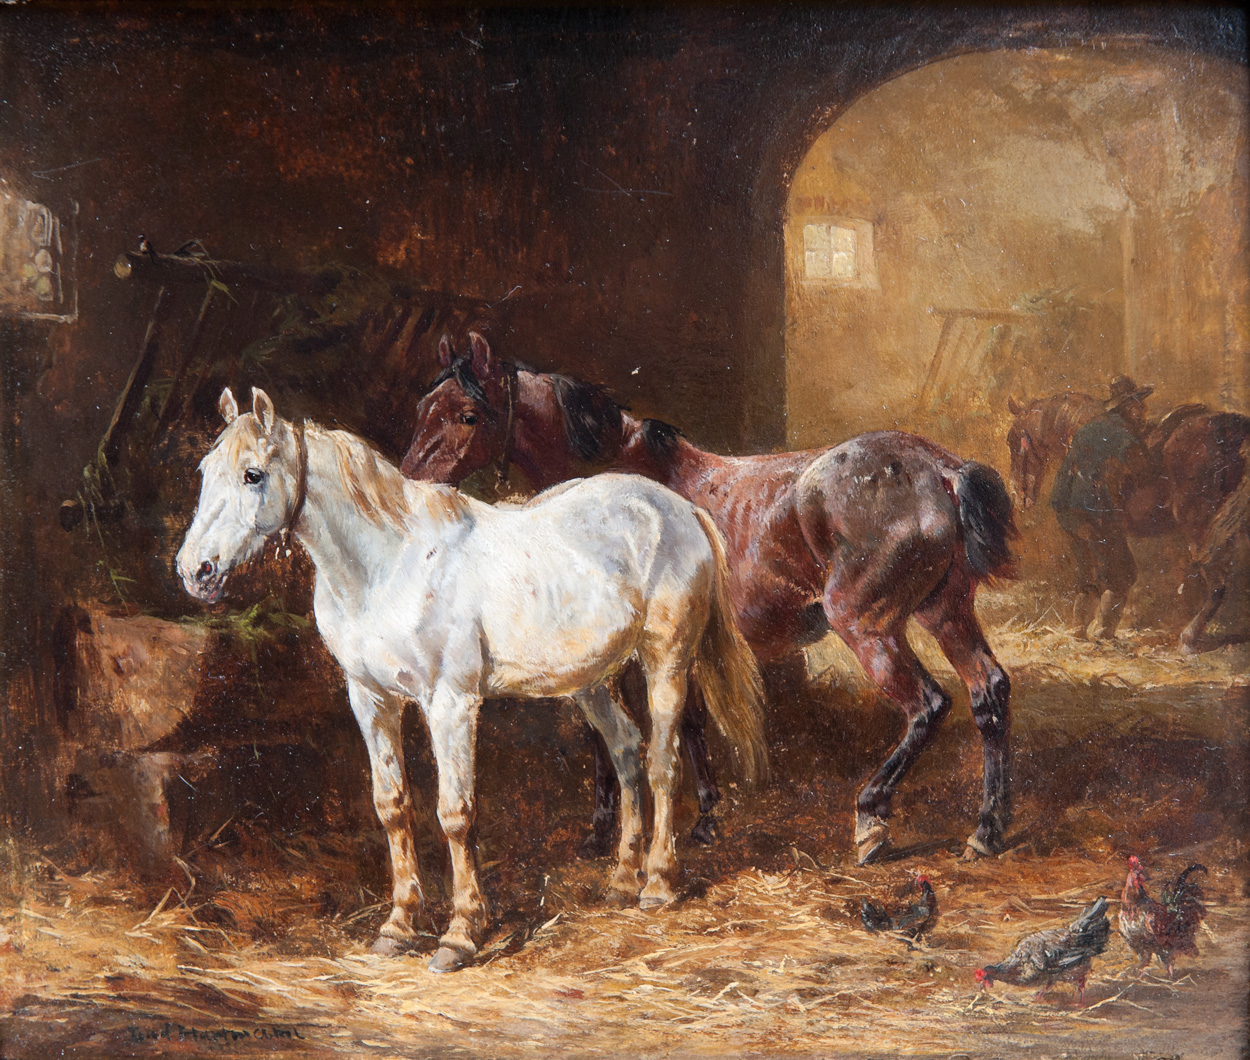 'In the Stable'